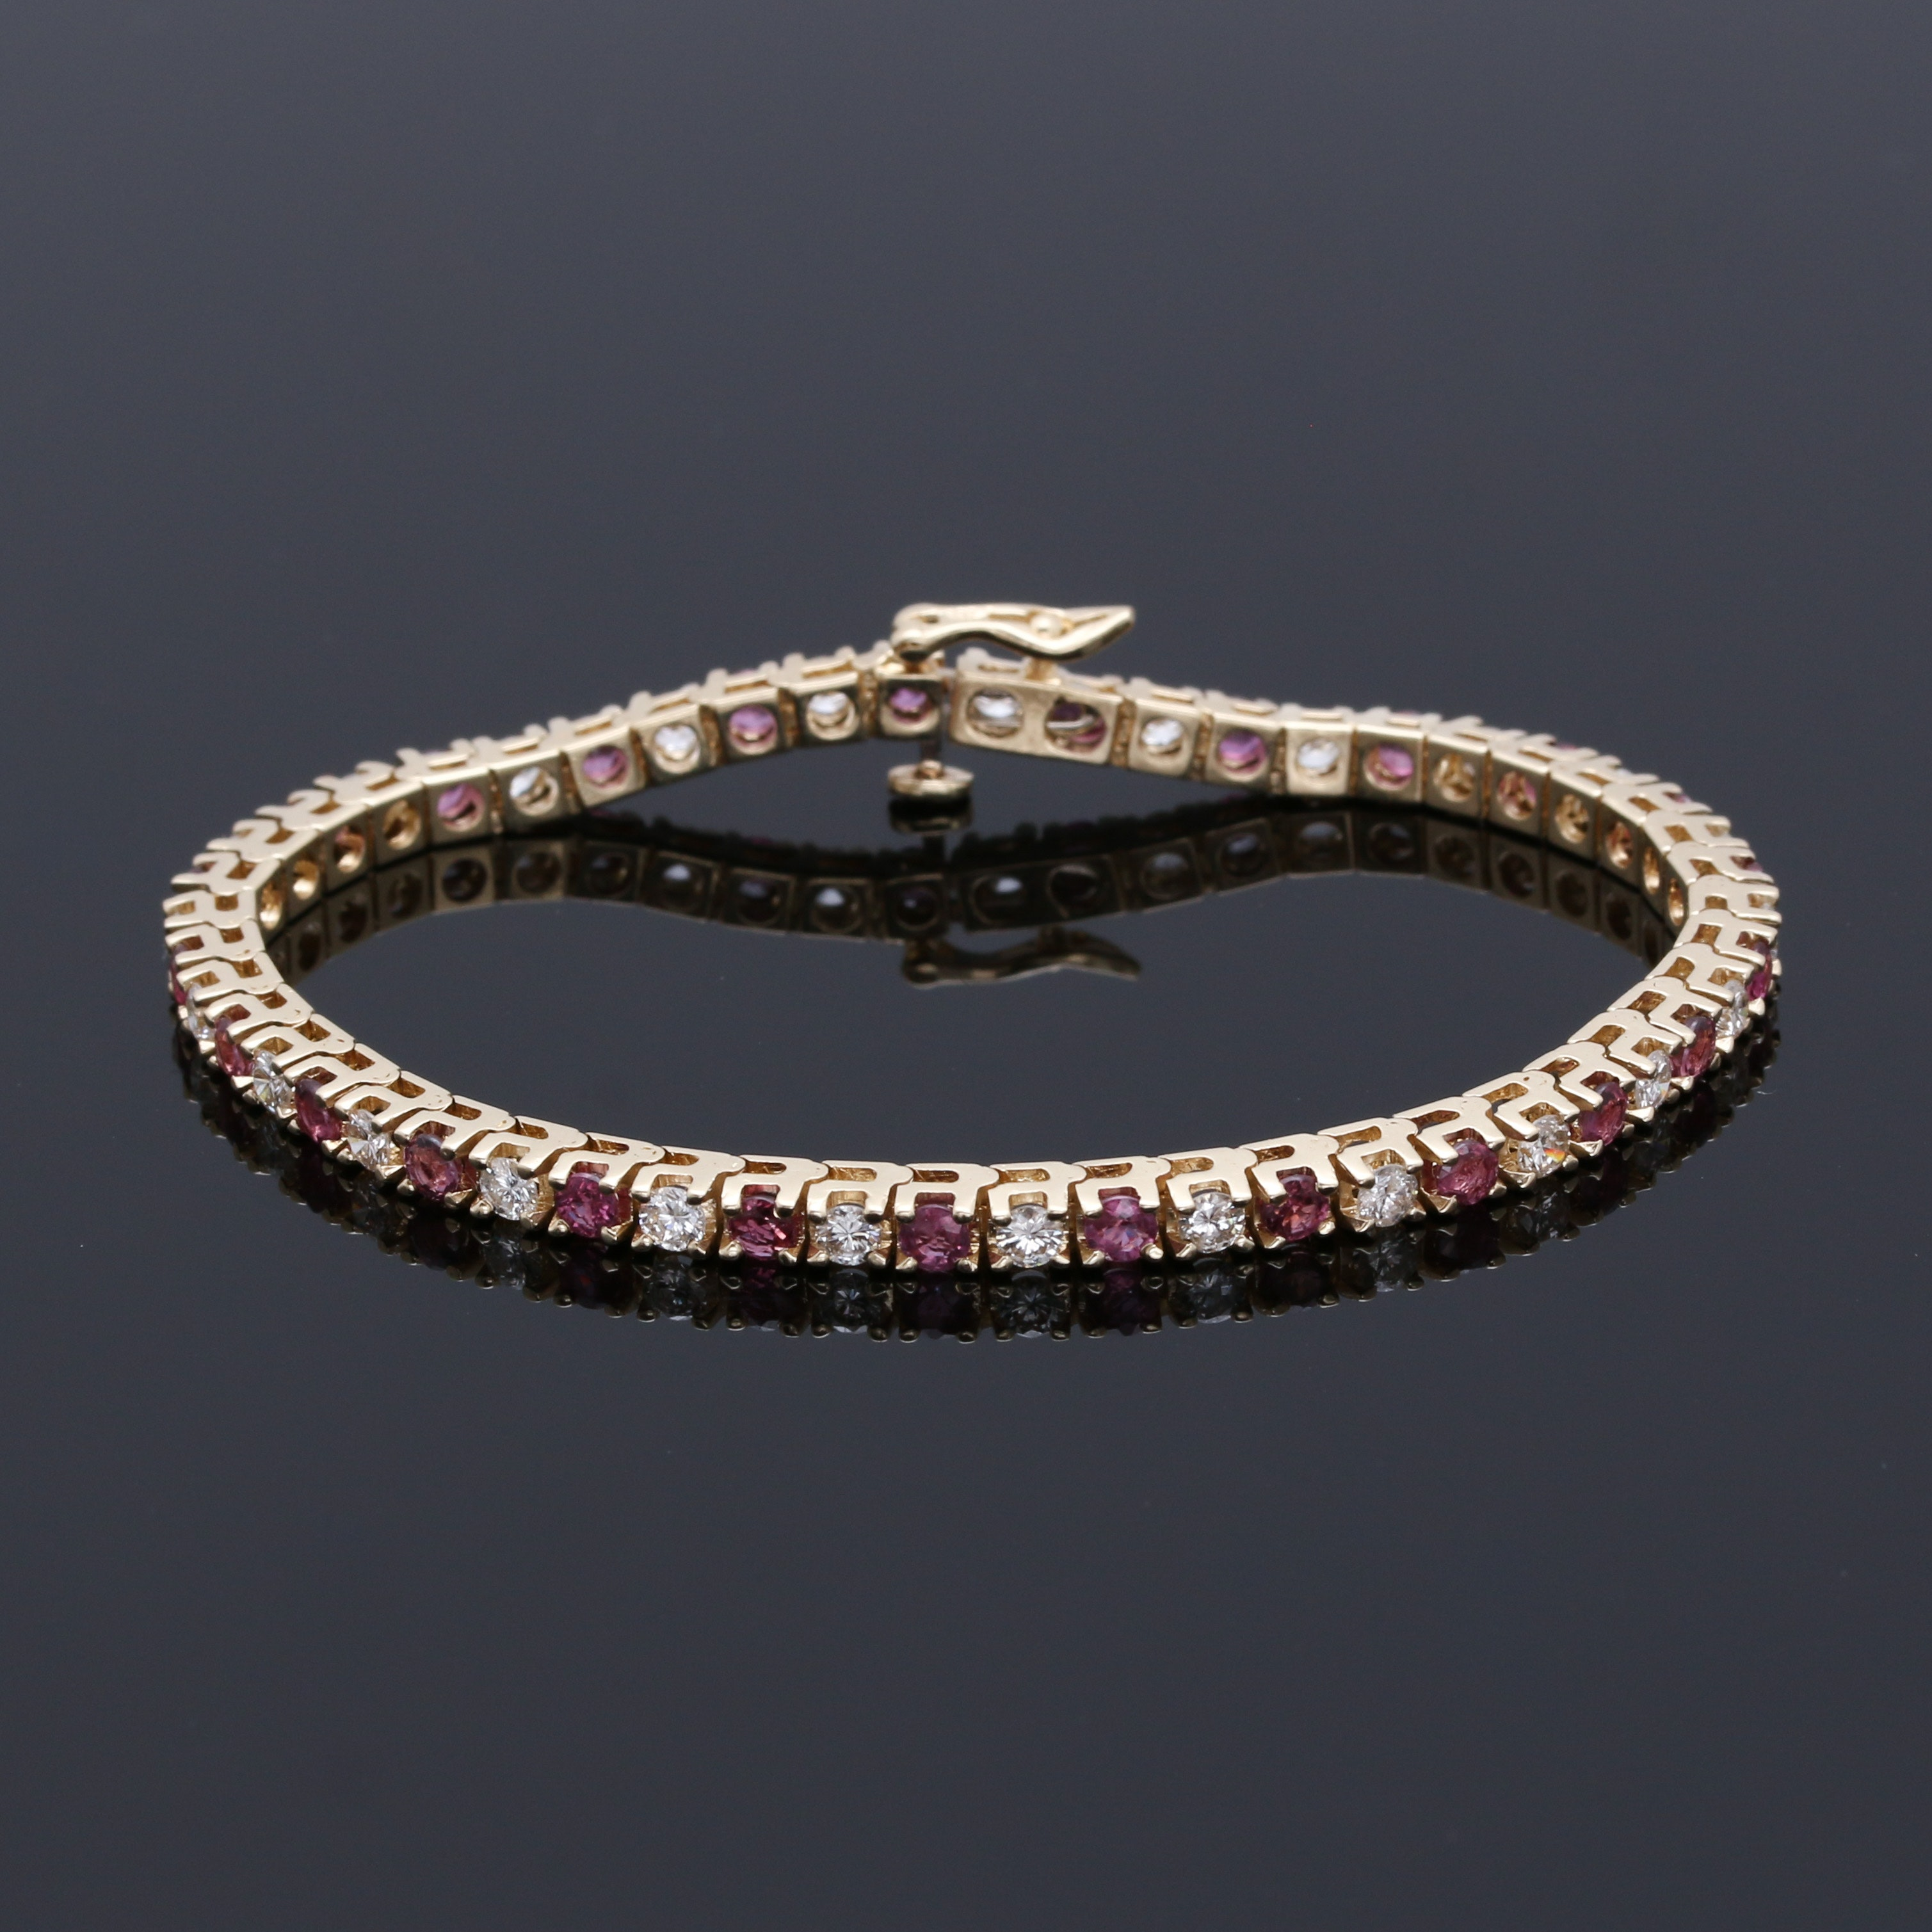 14K Yellow Gold 1.63 CTW Diamond and Ruby Tennis Bracelet